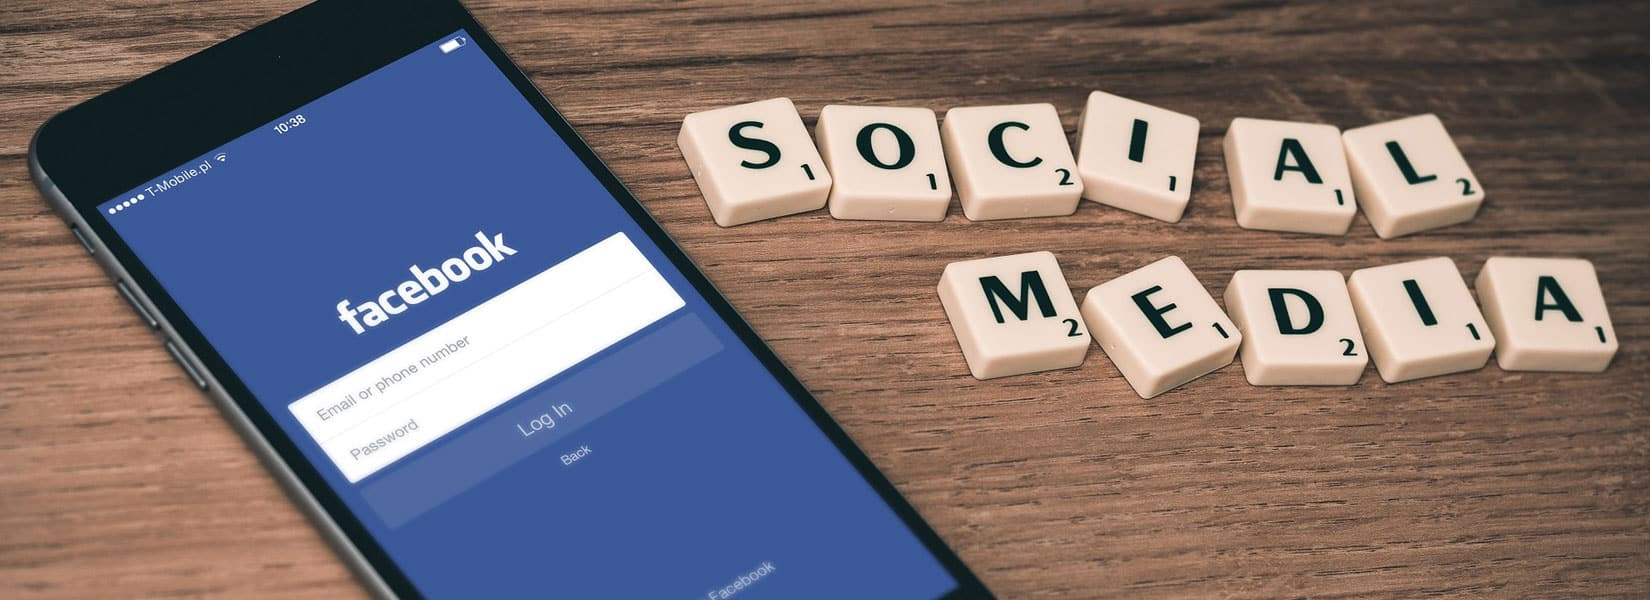 Social Media's After on a Car Accident Case